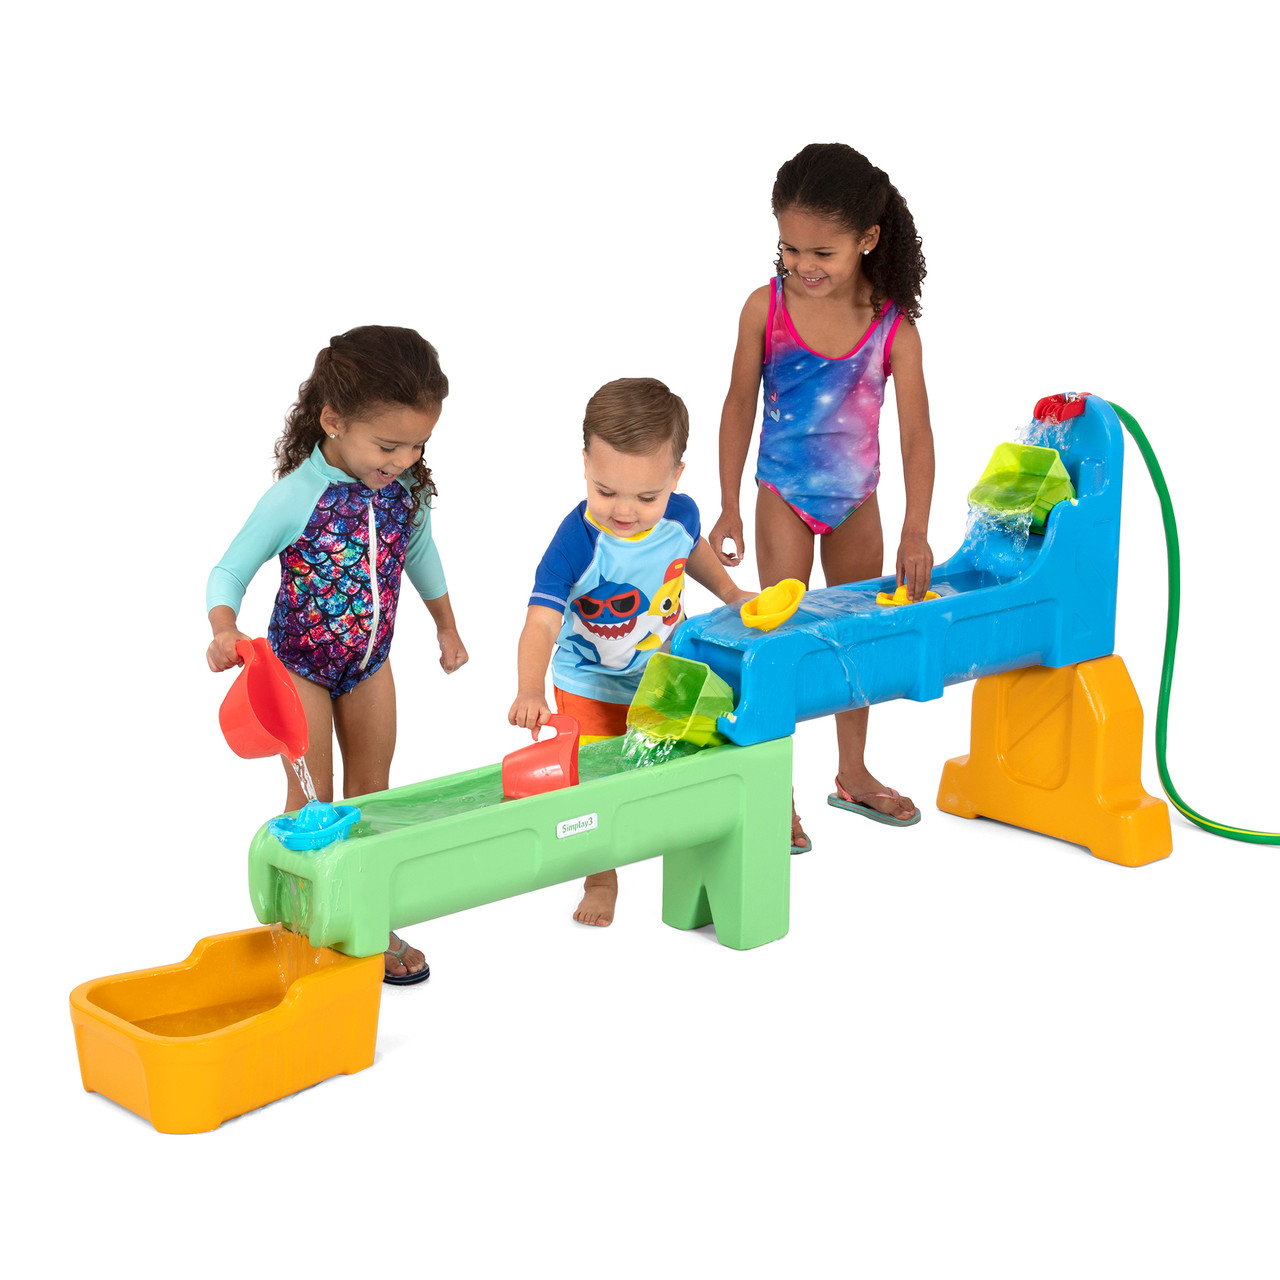 Smiling children enjoying playing with rushing river falls water play table